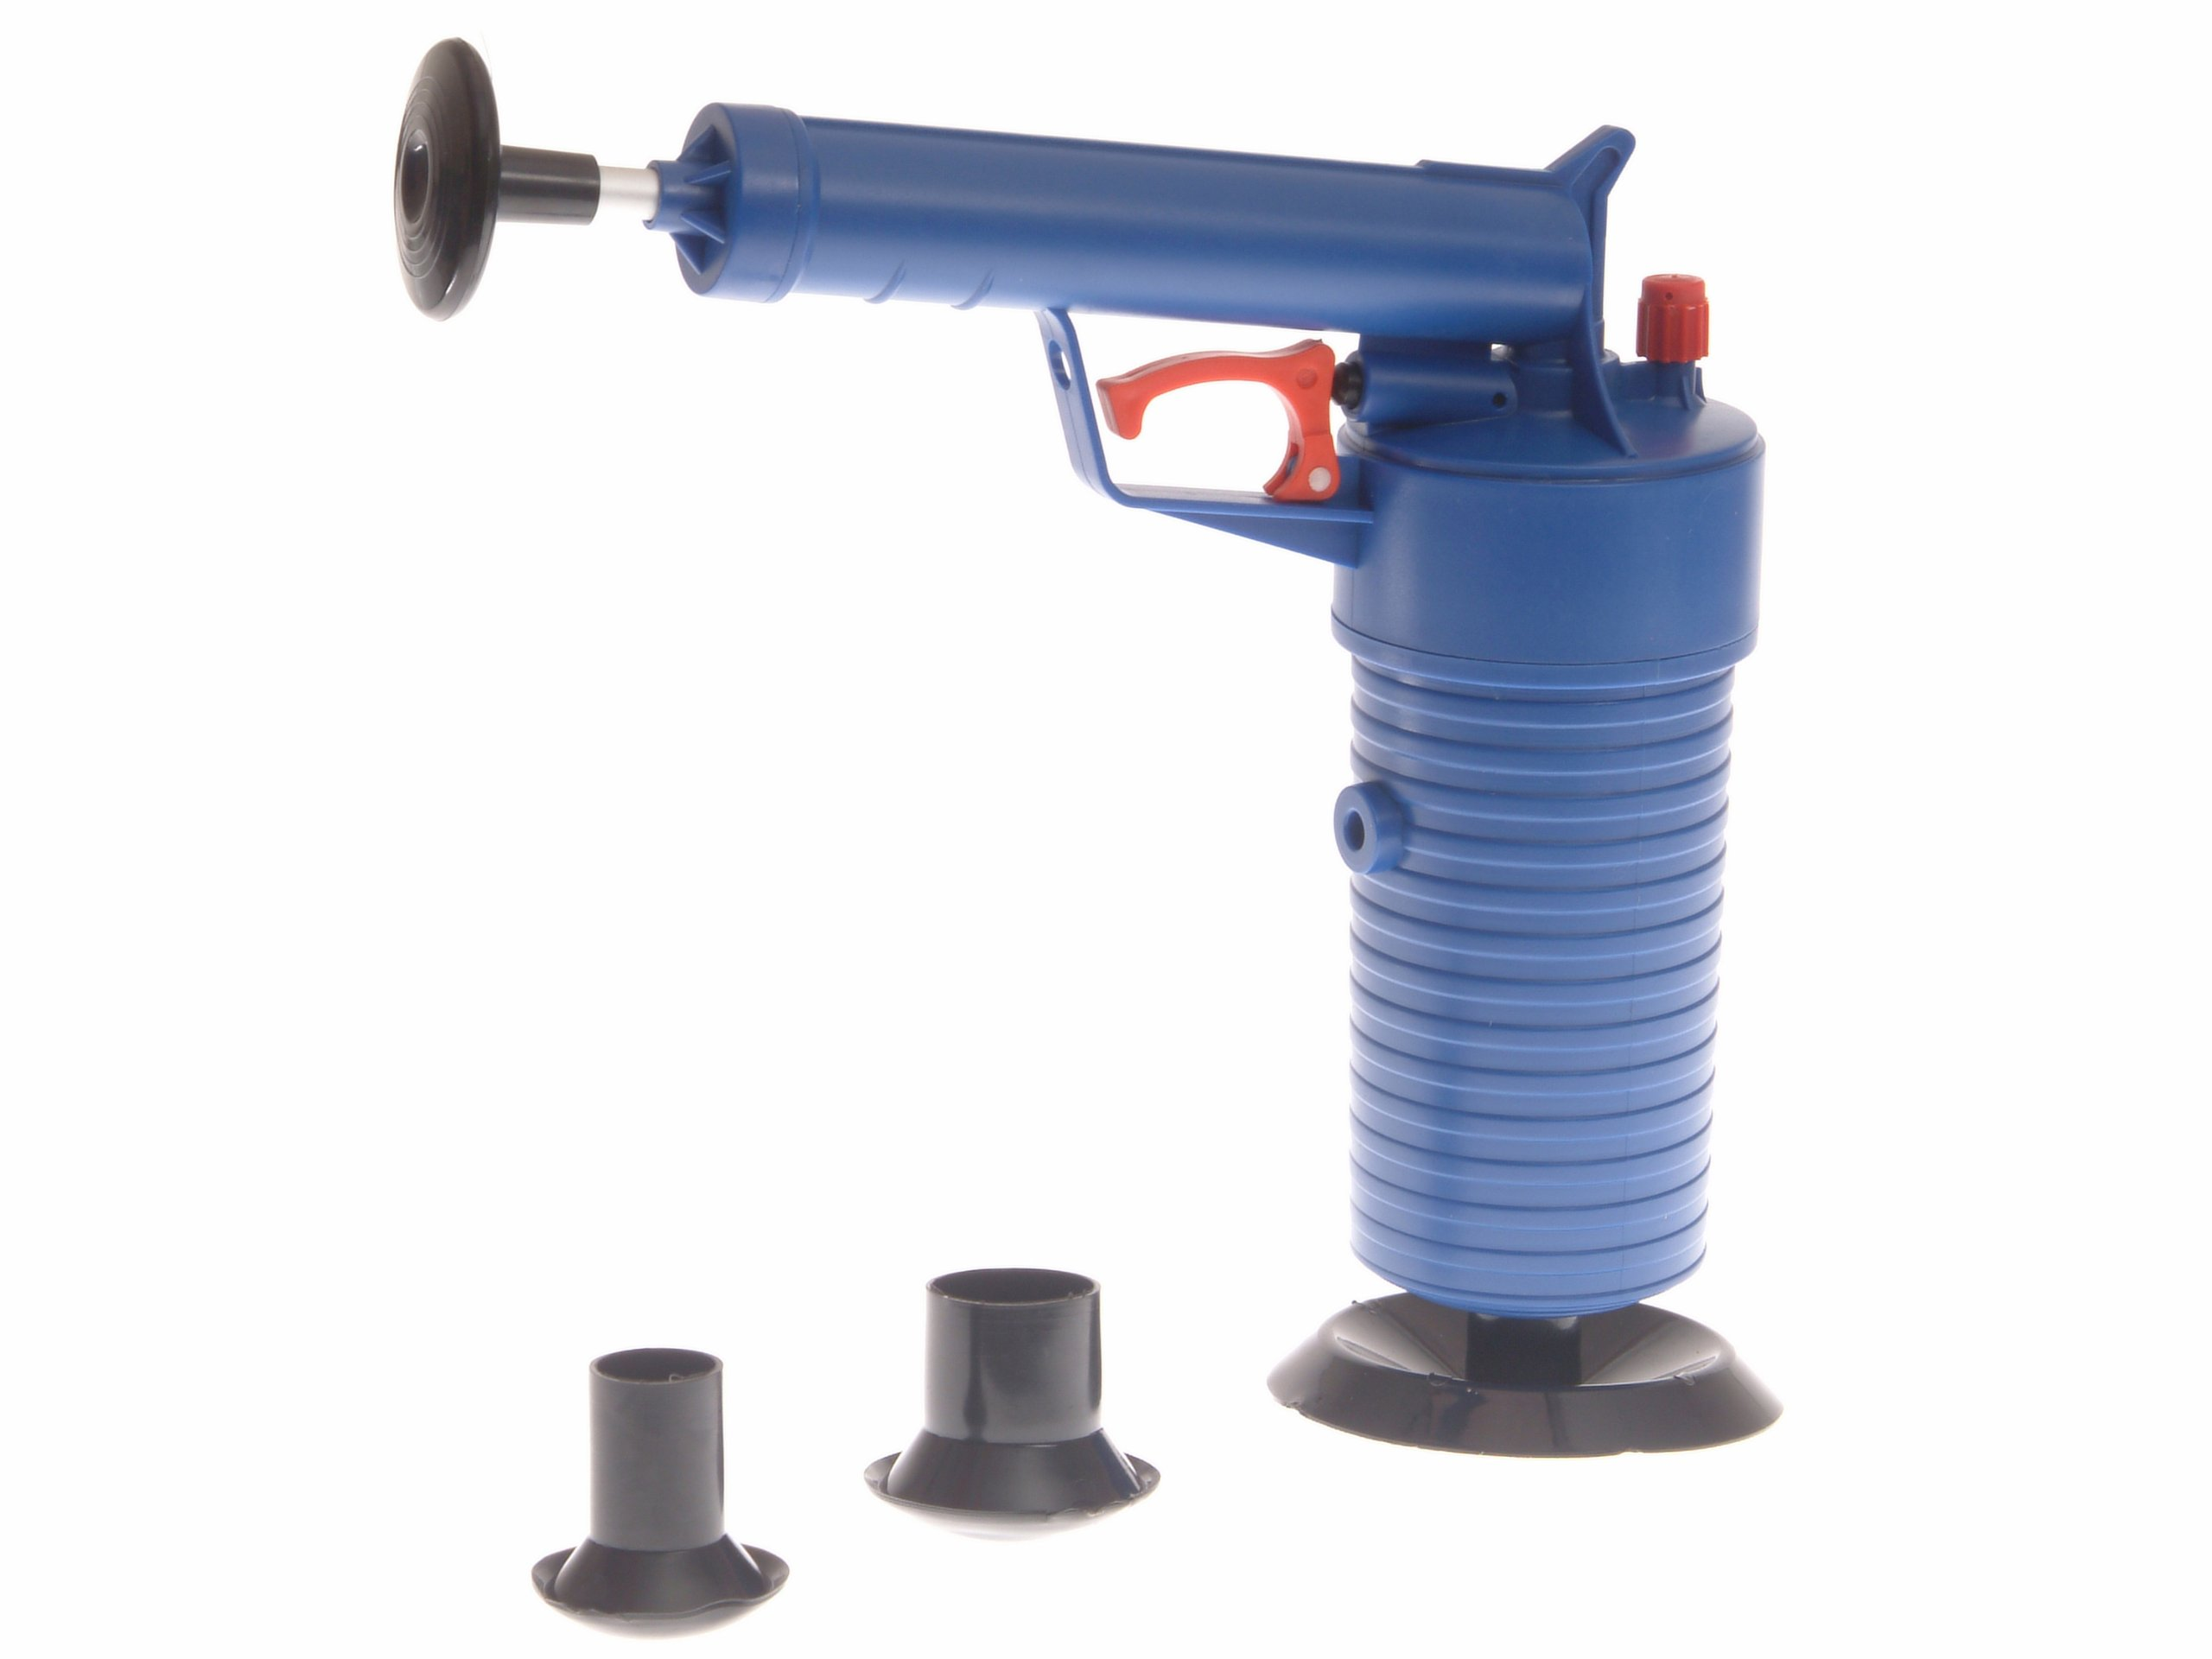 2161X Professional Power Plunger by Unknown